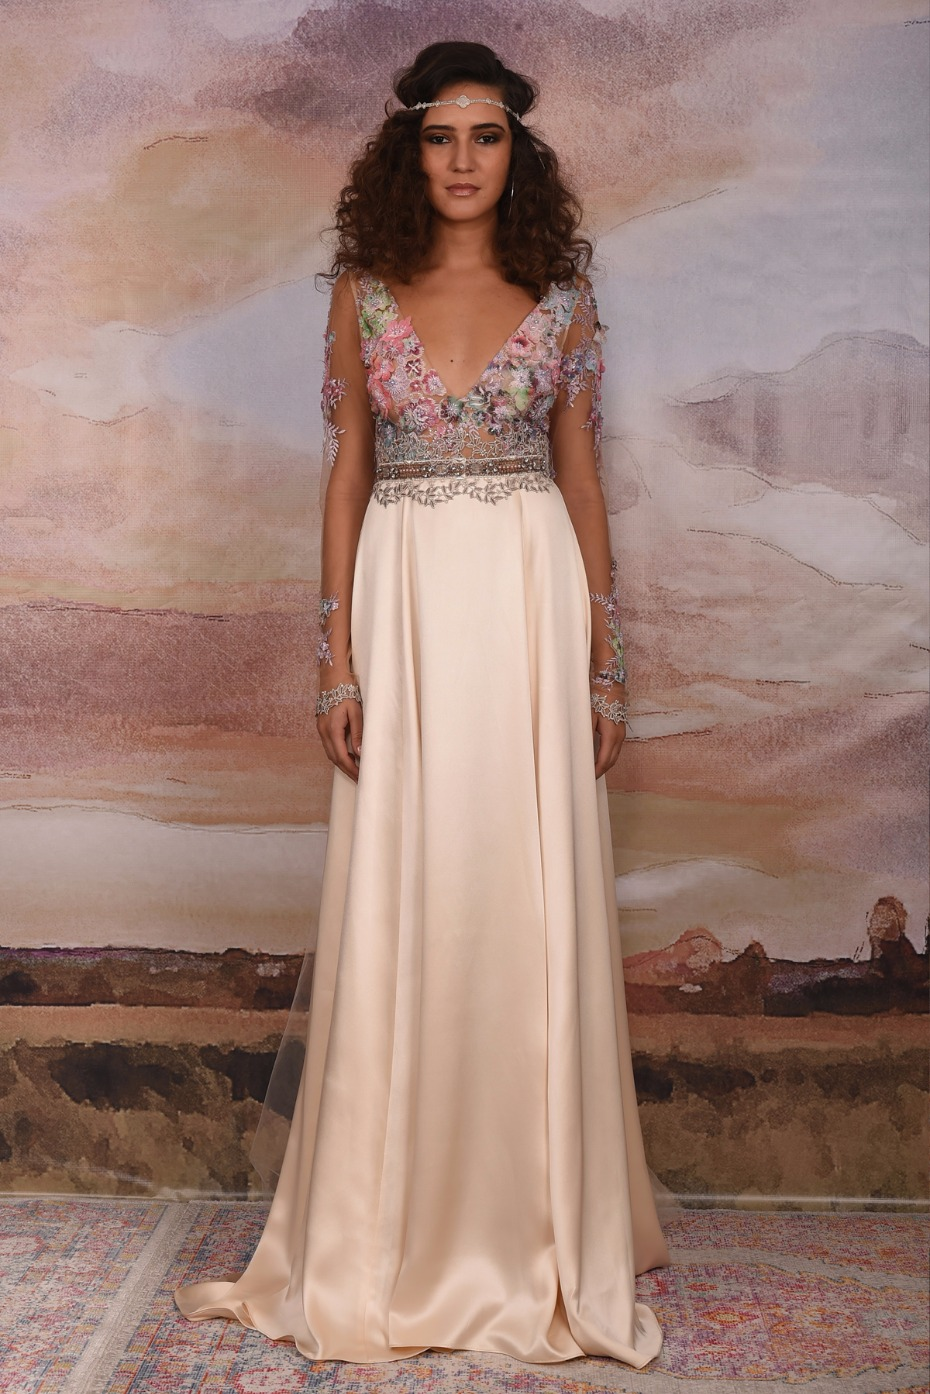 Salon Ecru Claire Pettibone Vagabond Collection 2018